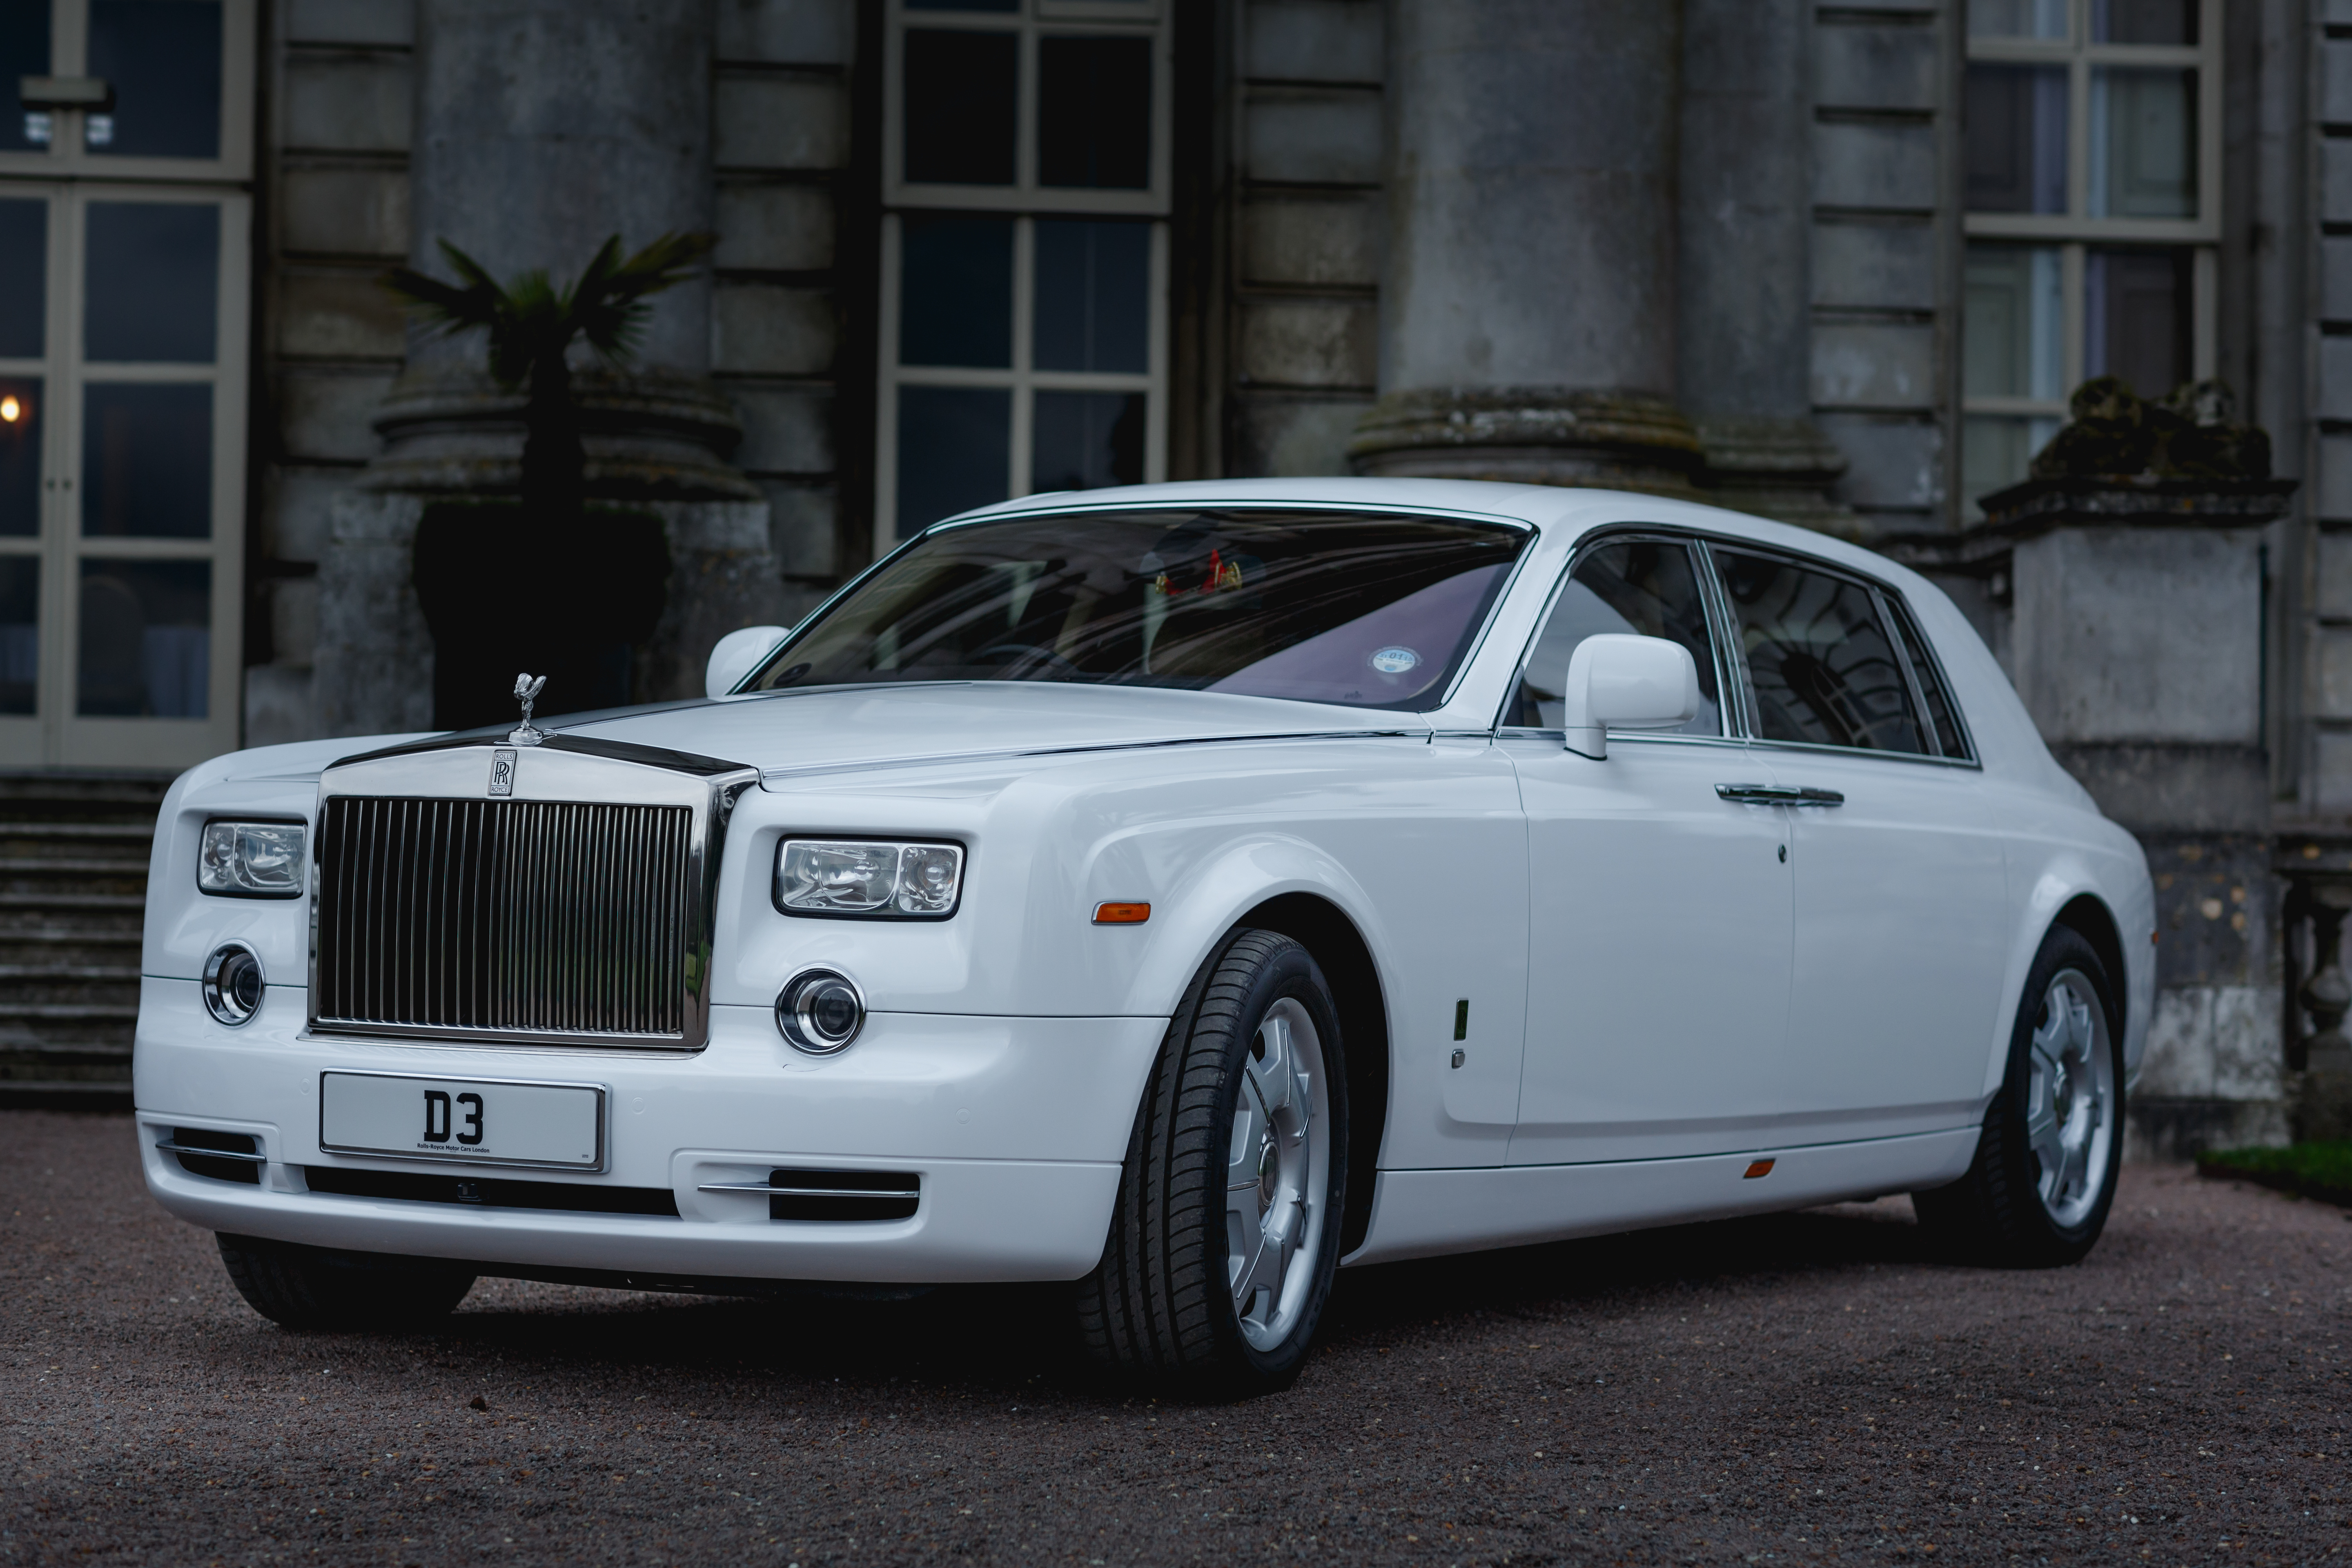 Rolls royce with photo - 6